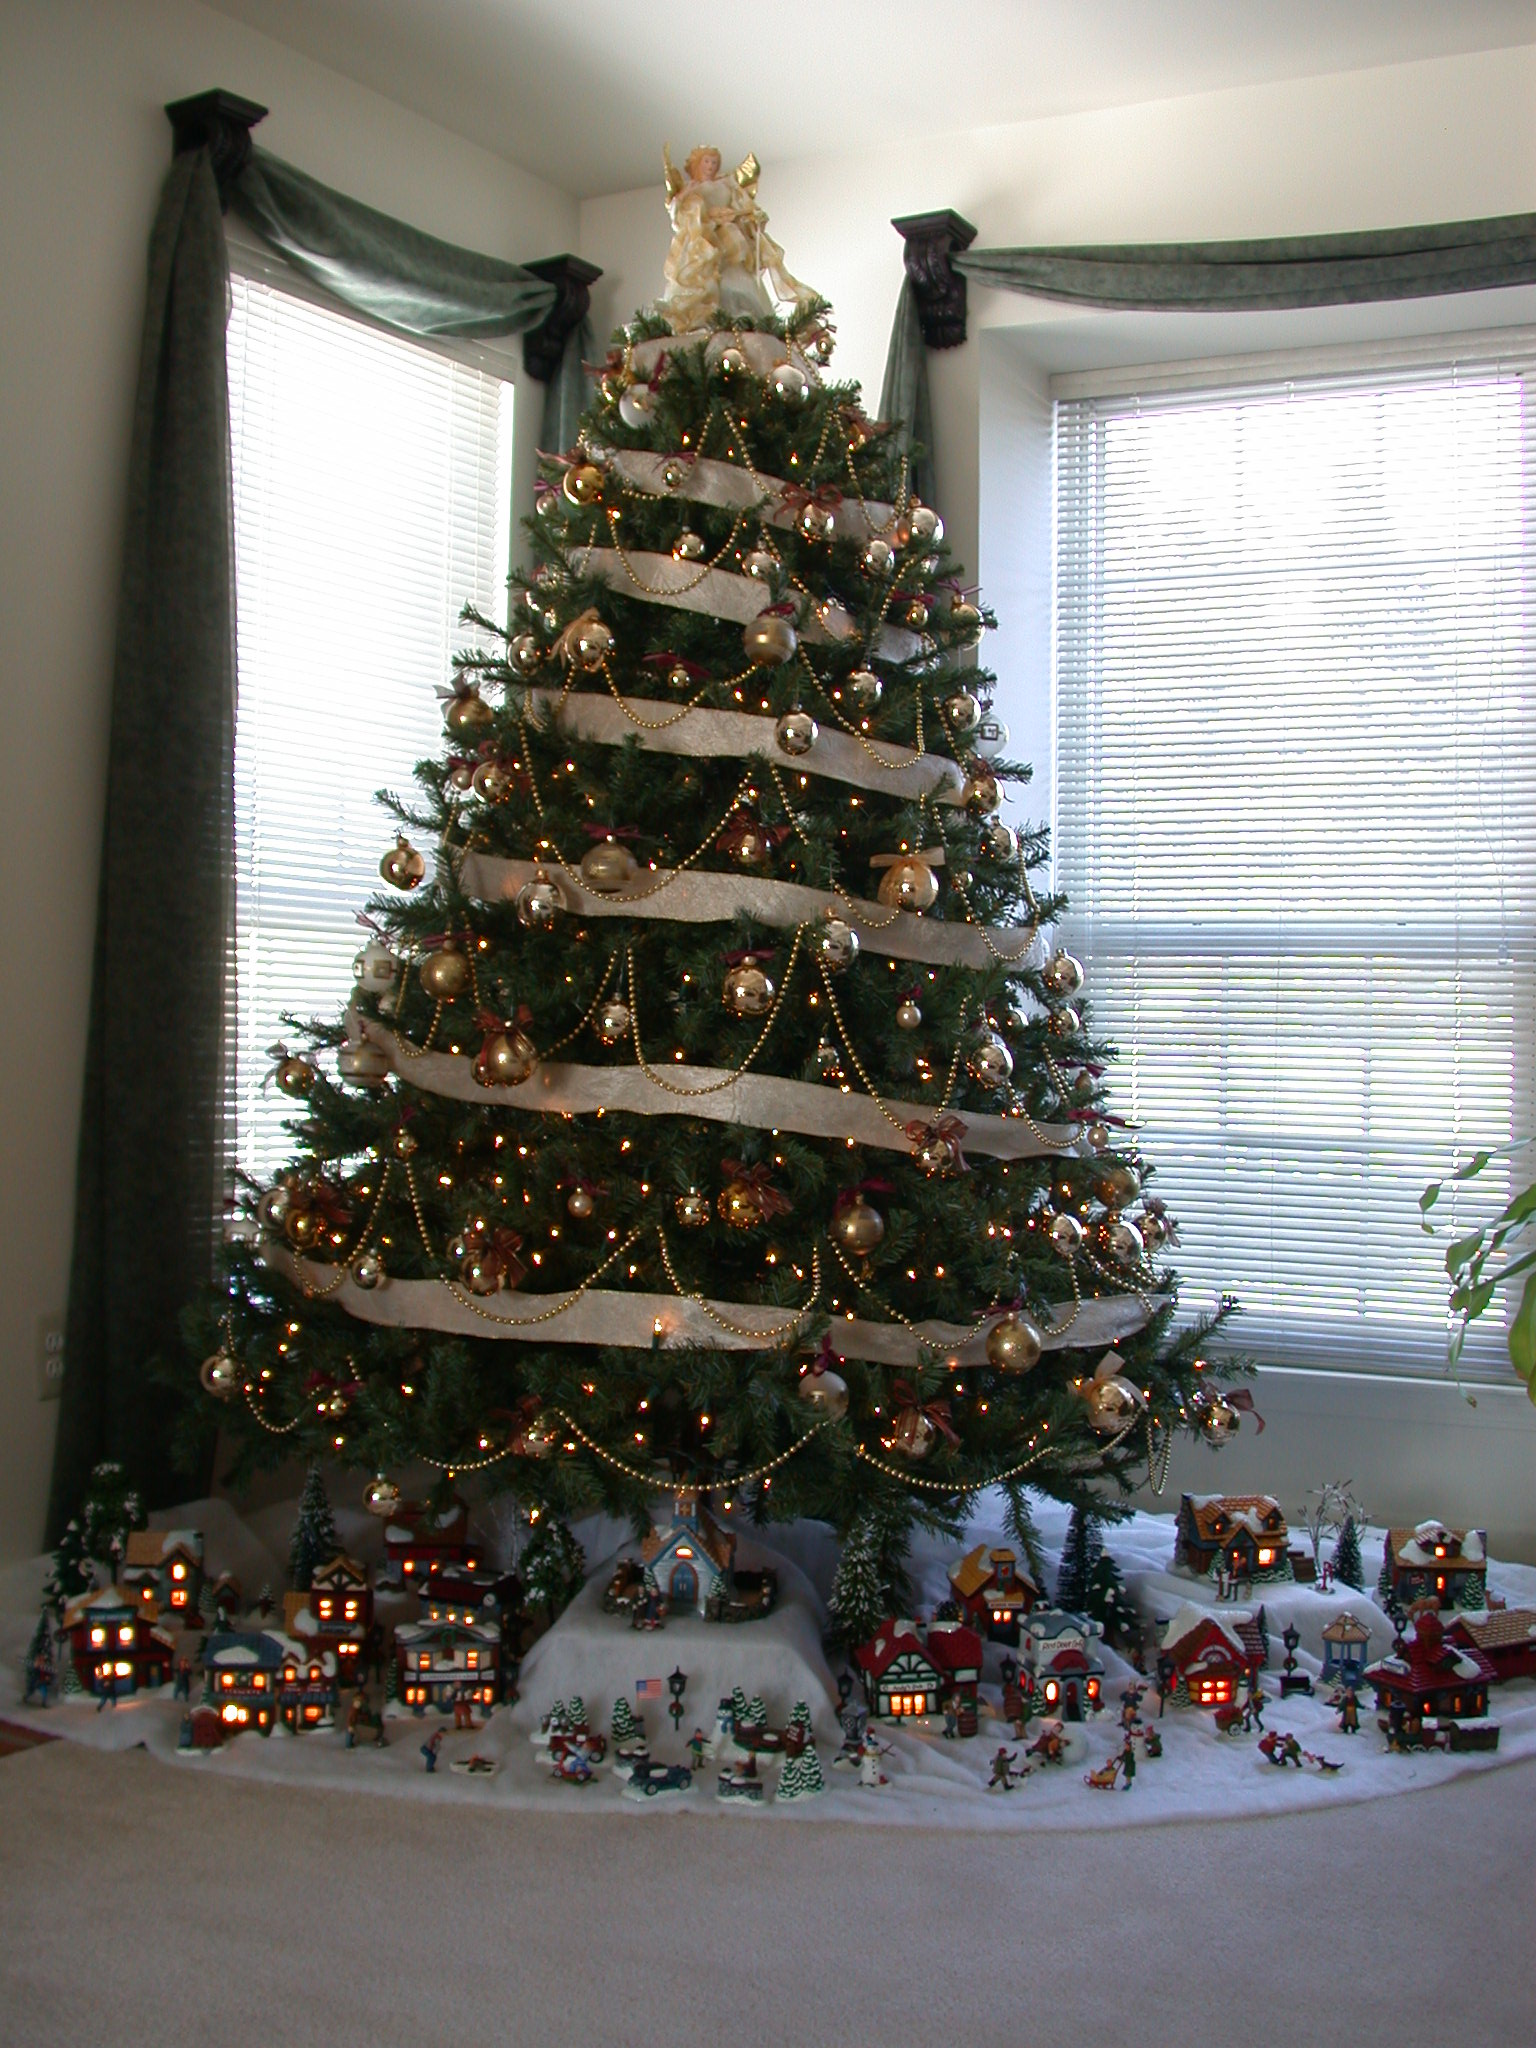 Image Christmas Tree With Village Underneath